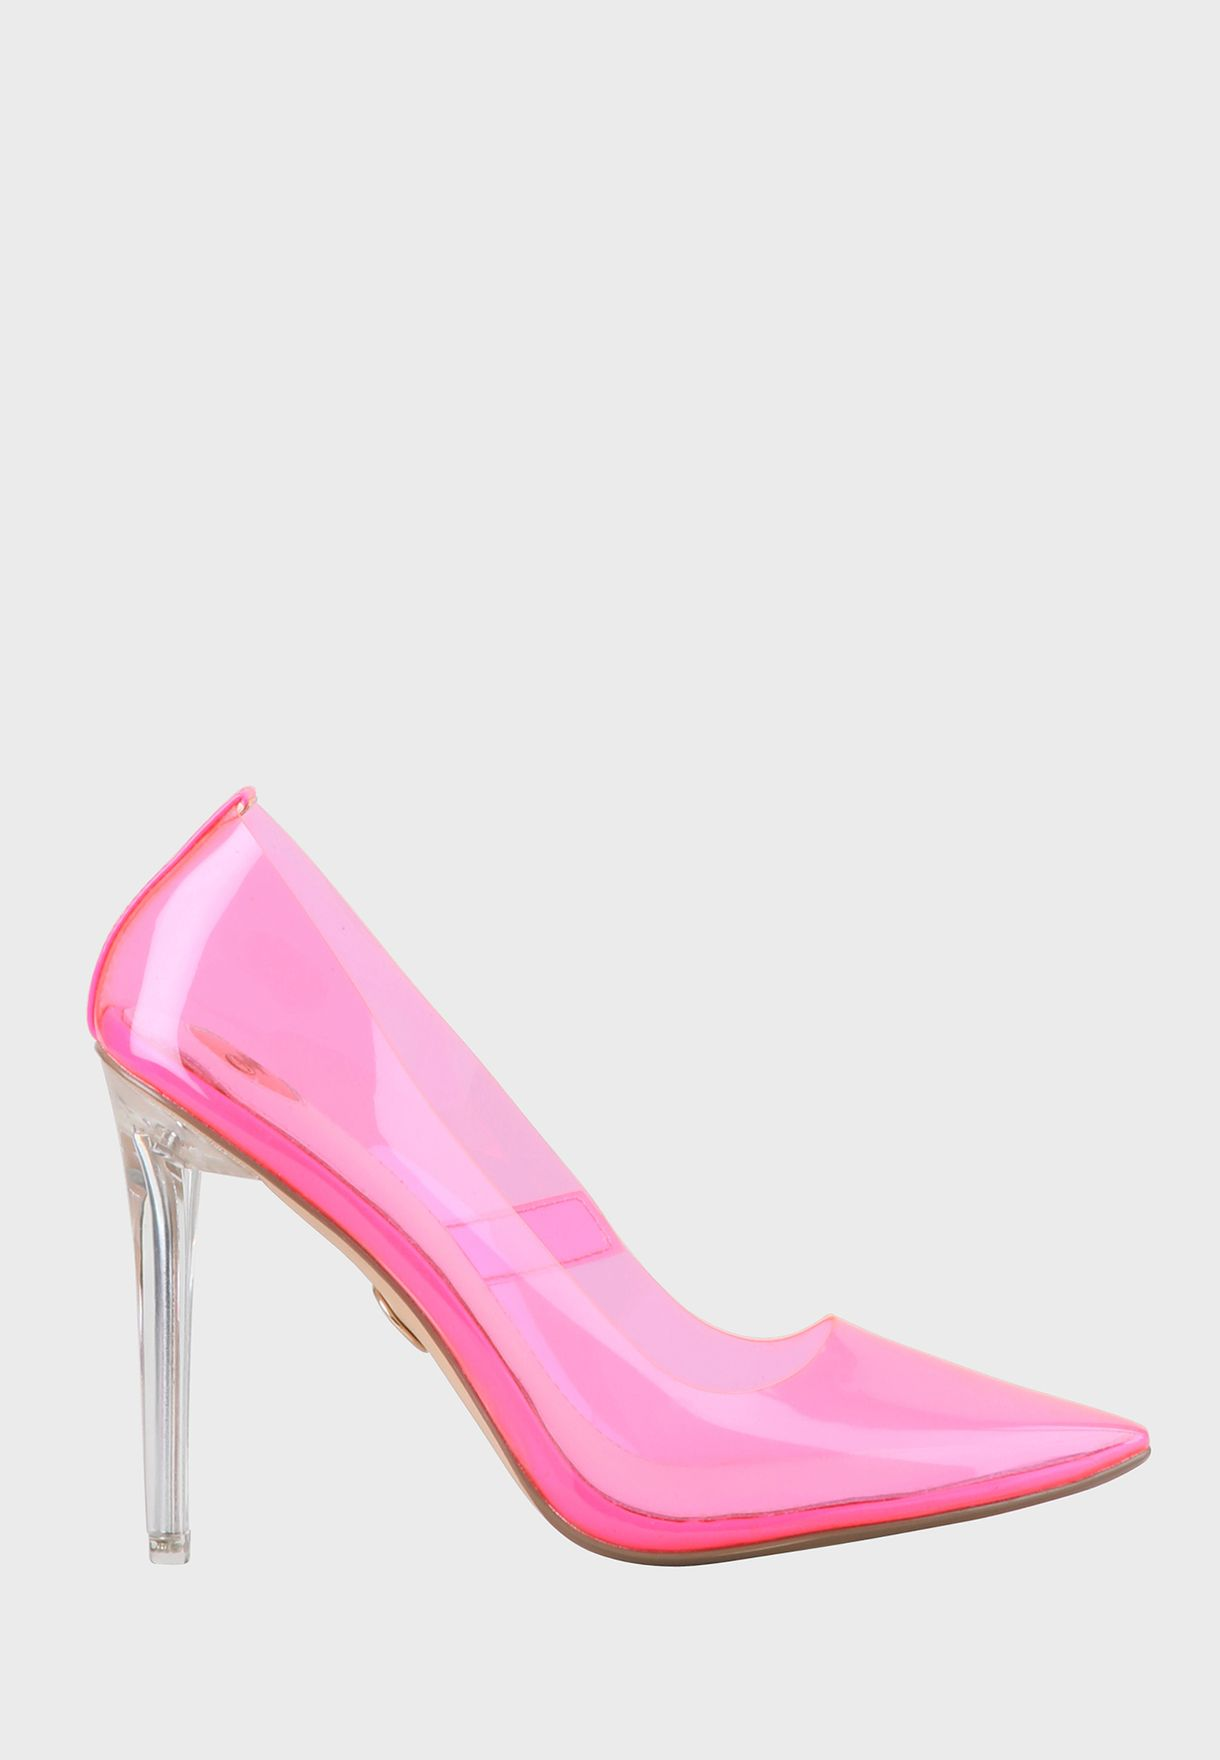 Juliana High Heel  Pump